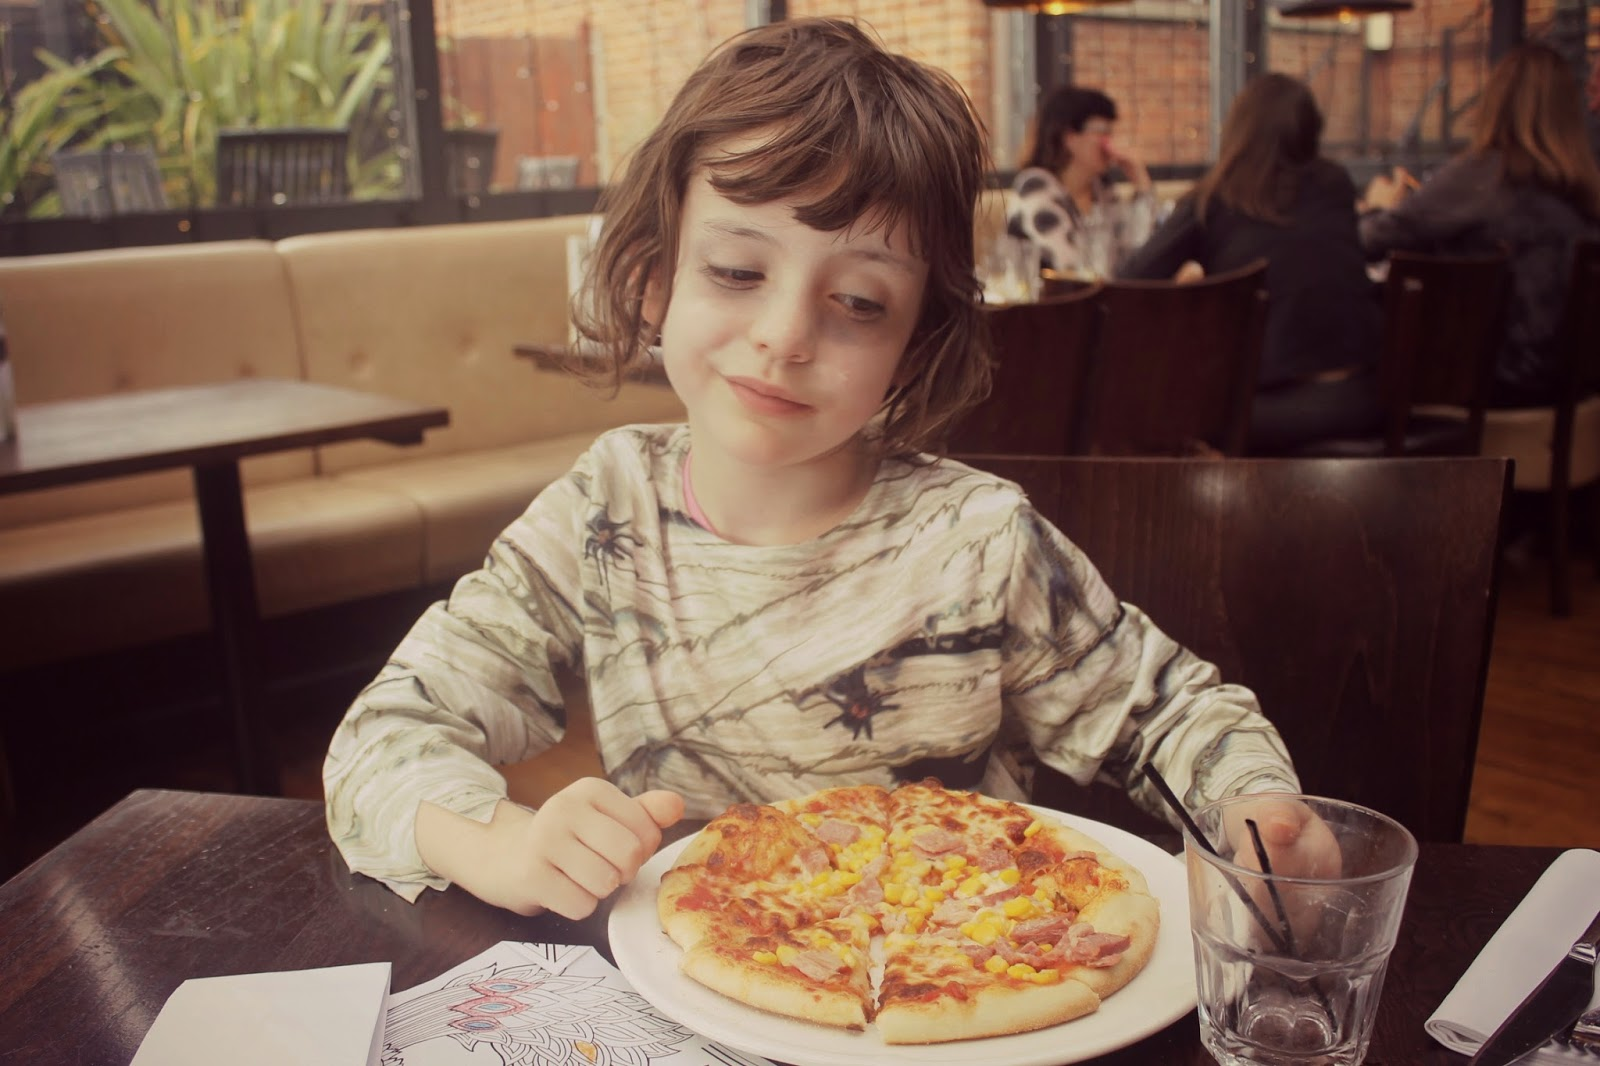 where can kids make their own pizza in yorkshire